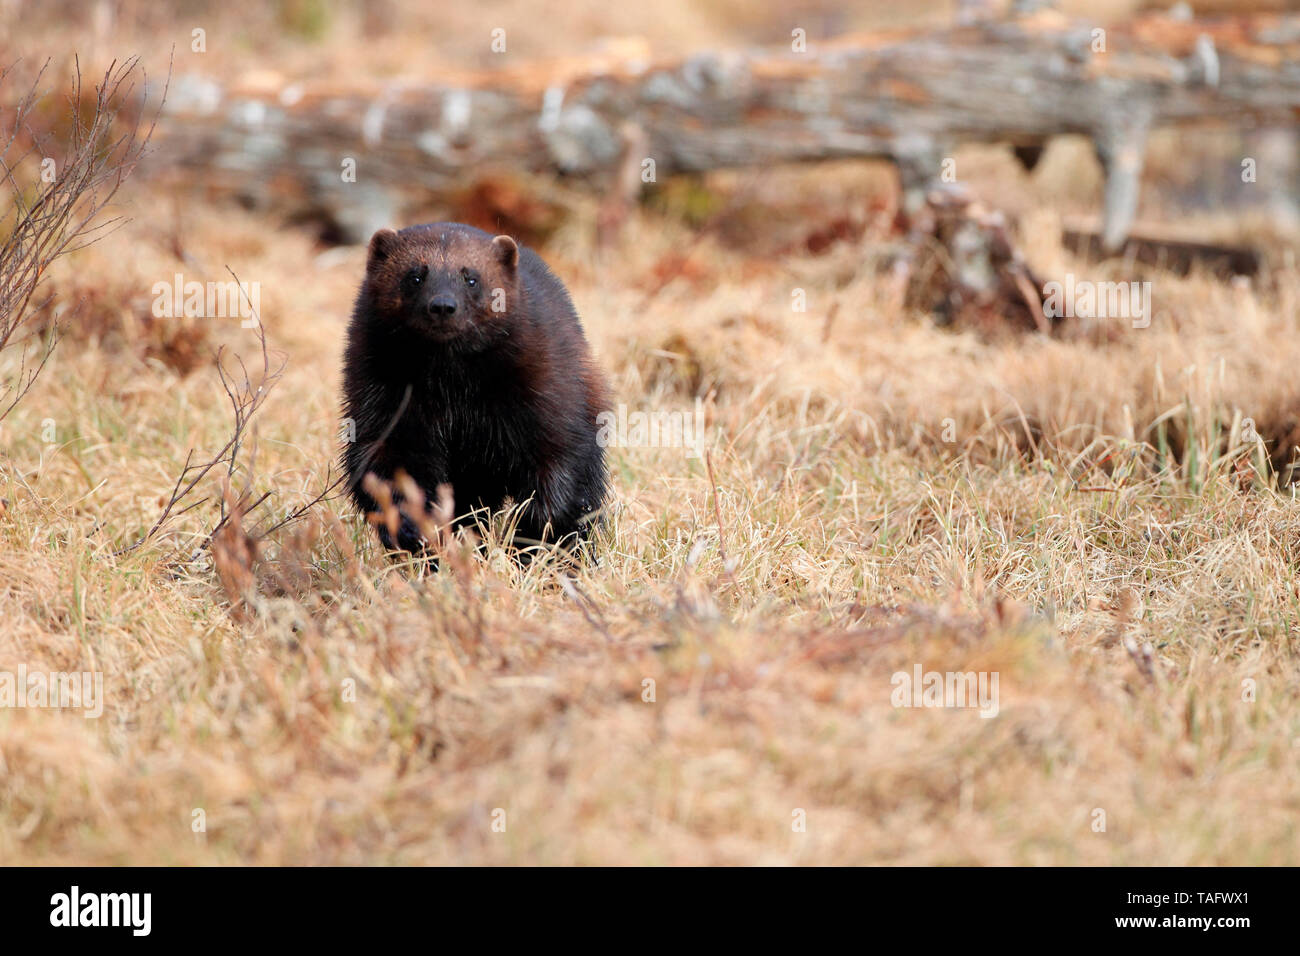 Wolverine (Gulo gulo) looking for food in the vegetation at the end of winter - Stock Image